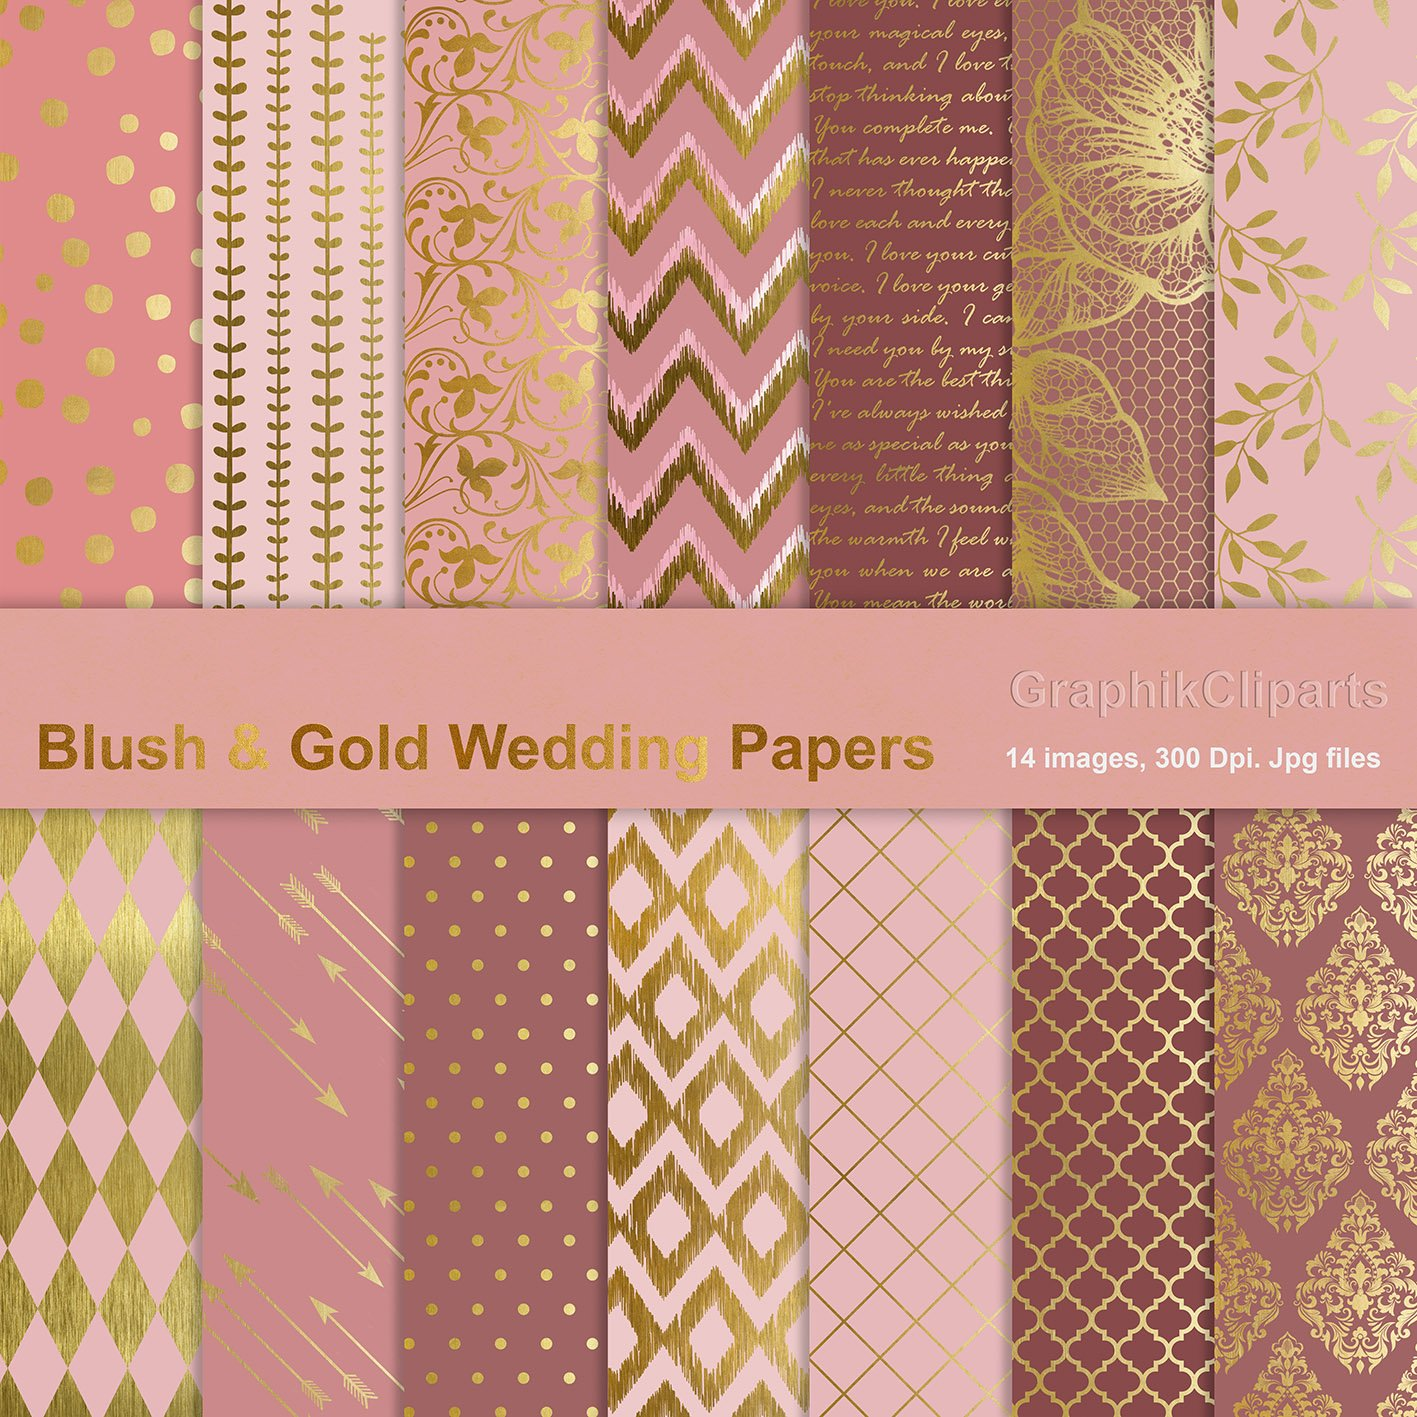 Blush Amp Gold Wedding Papers Graphic Patterns Creative